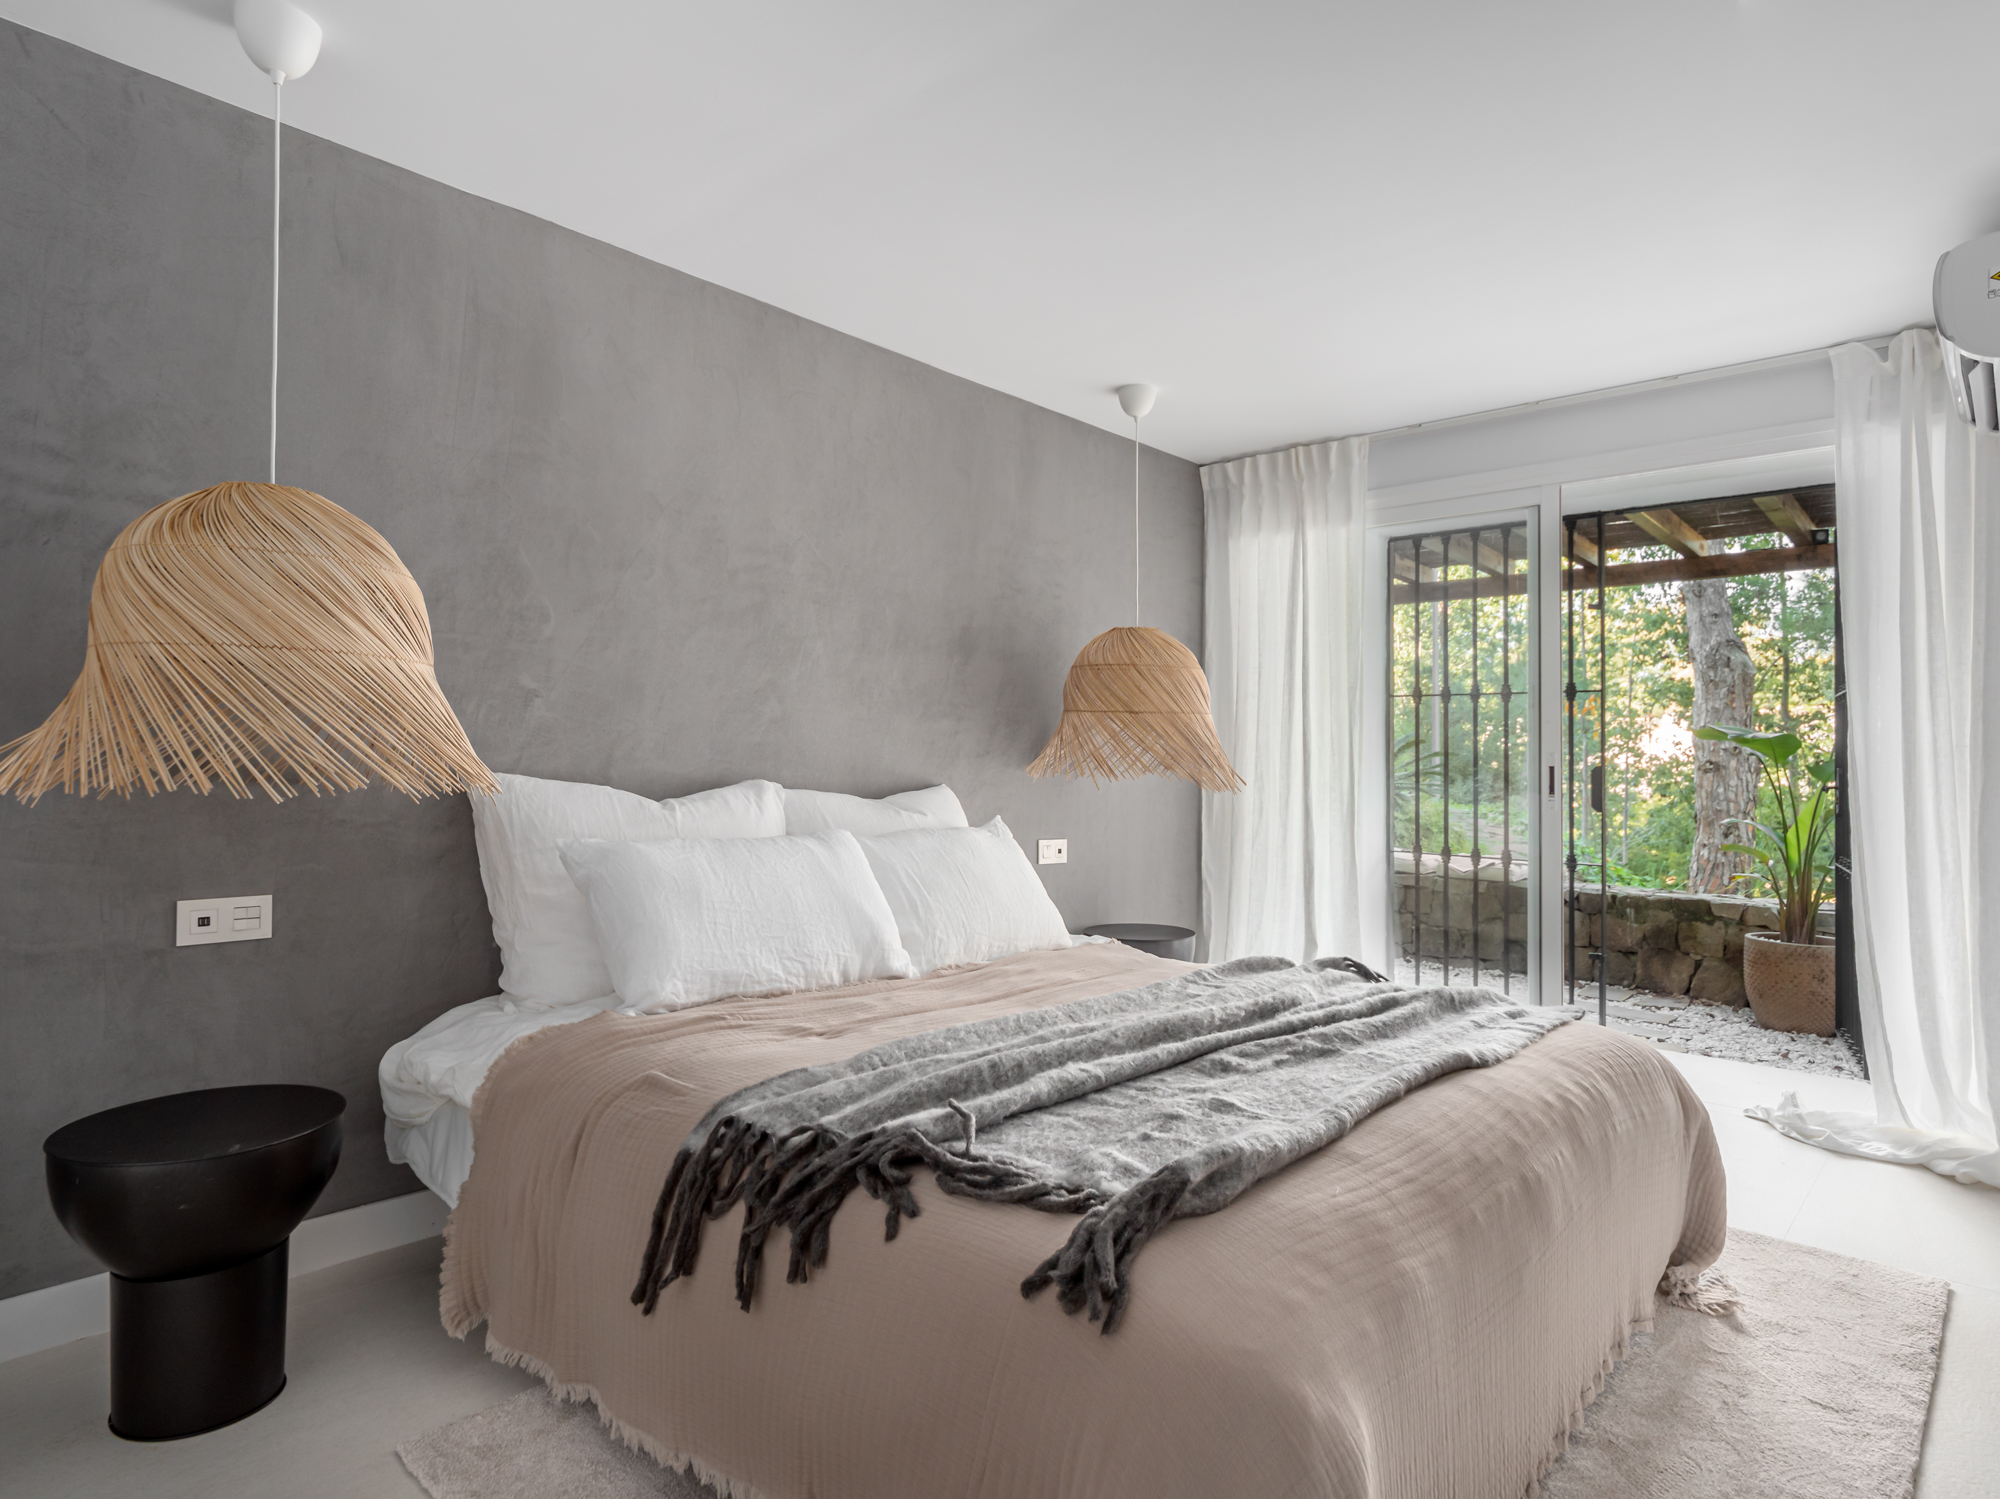 Refurbished bohemian style apartment in Eagles Village